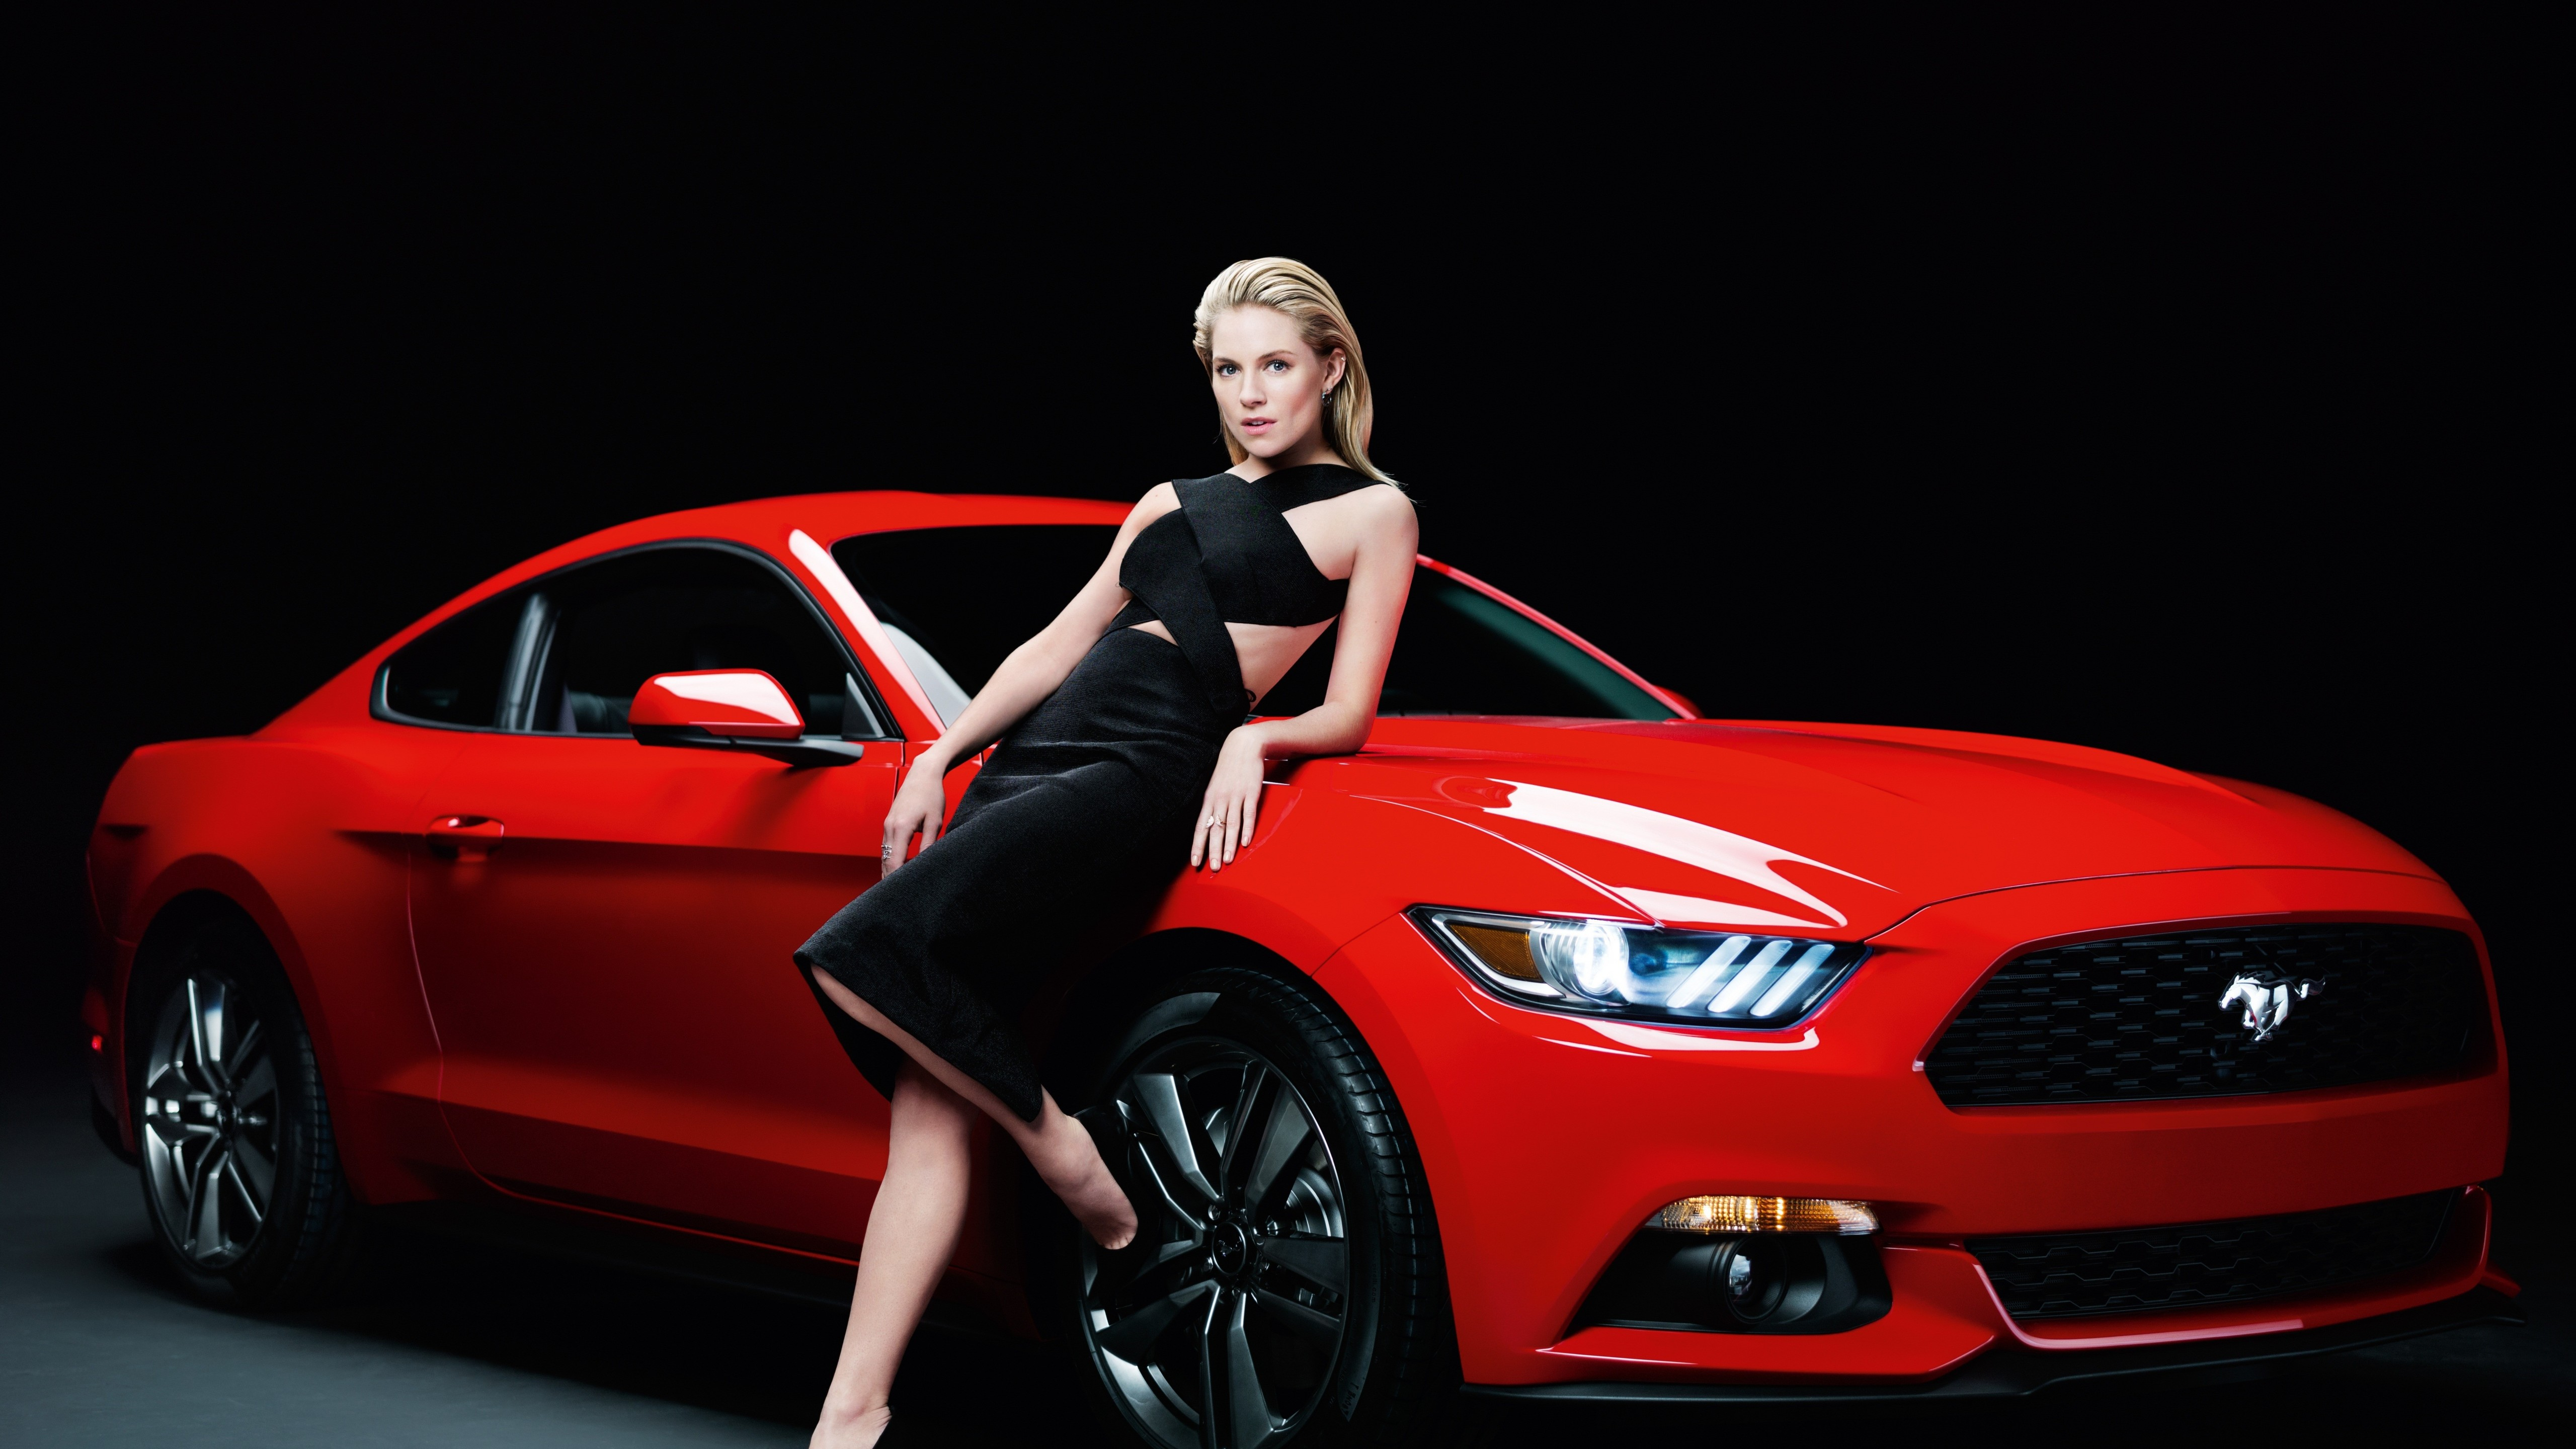 Pinup Girls Ford Mustang Wallpaper Wallpaper Ford Mustang Sienna Miller Girl Red Coupe